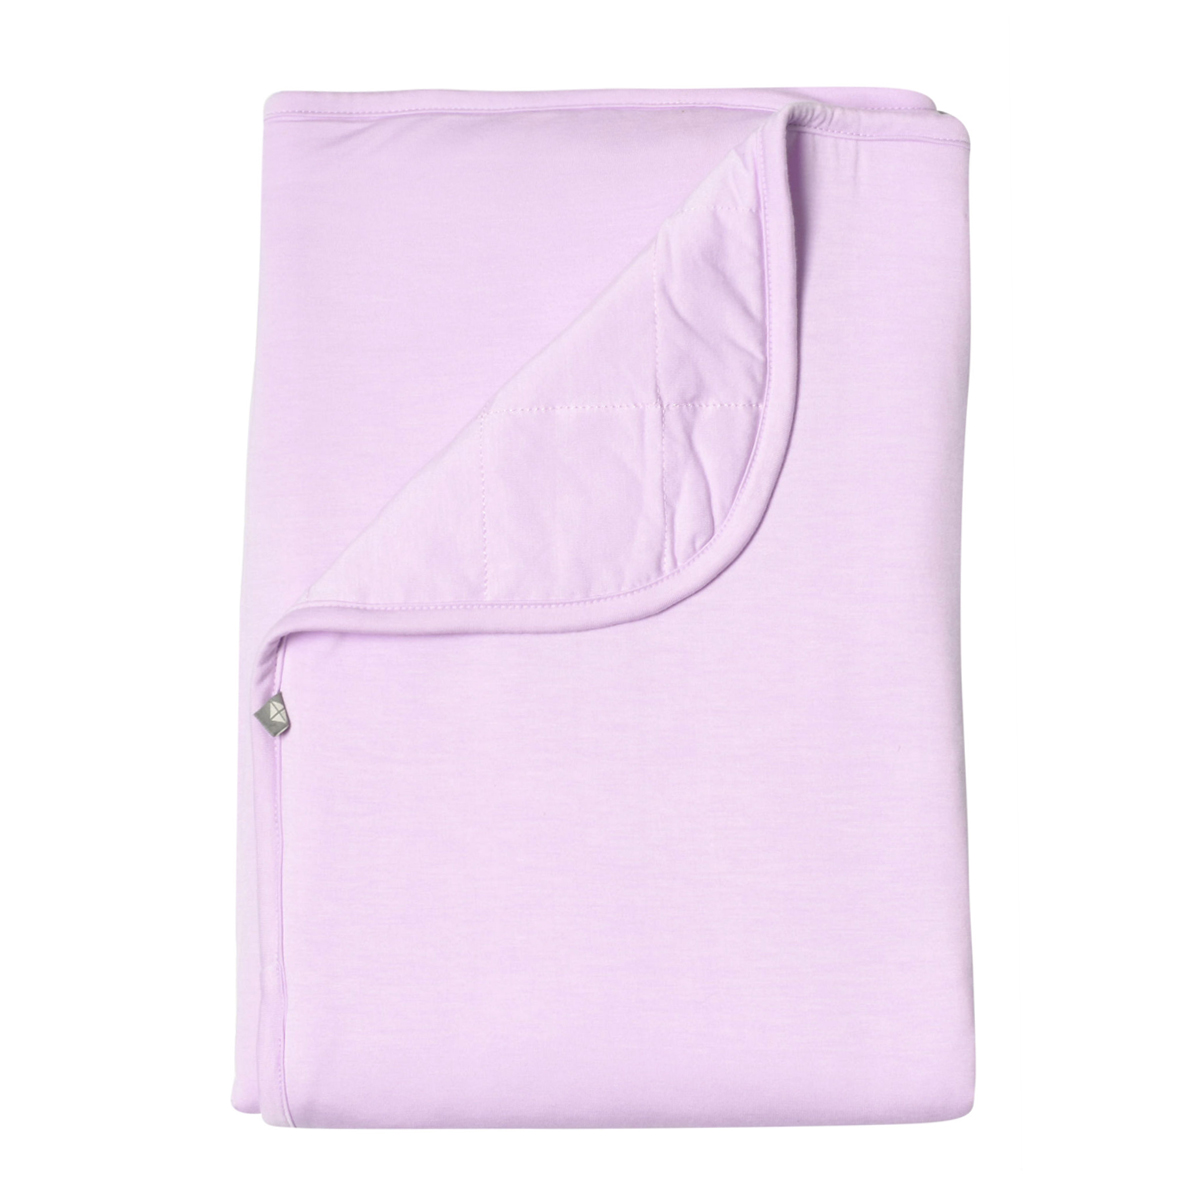 Kyte Baby Bamboo Blanket in Mauve